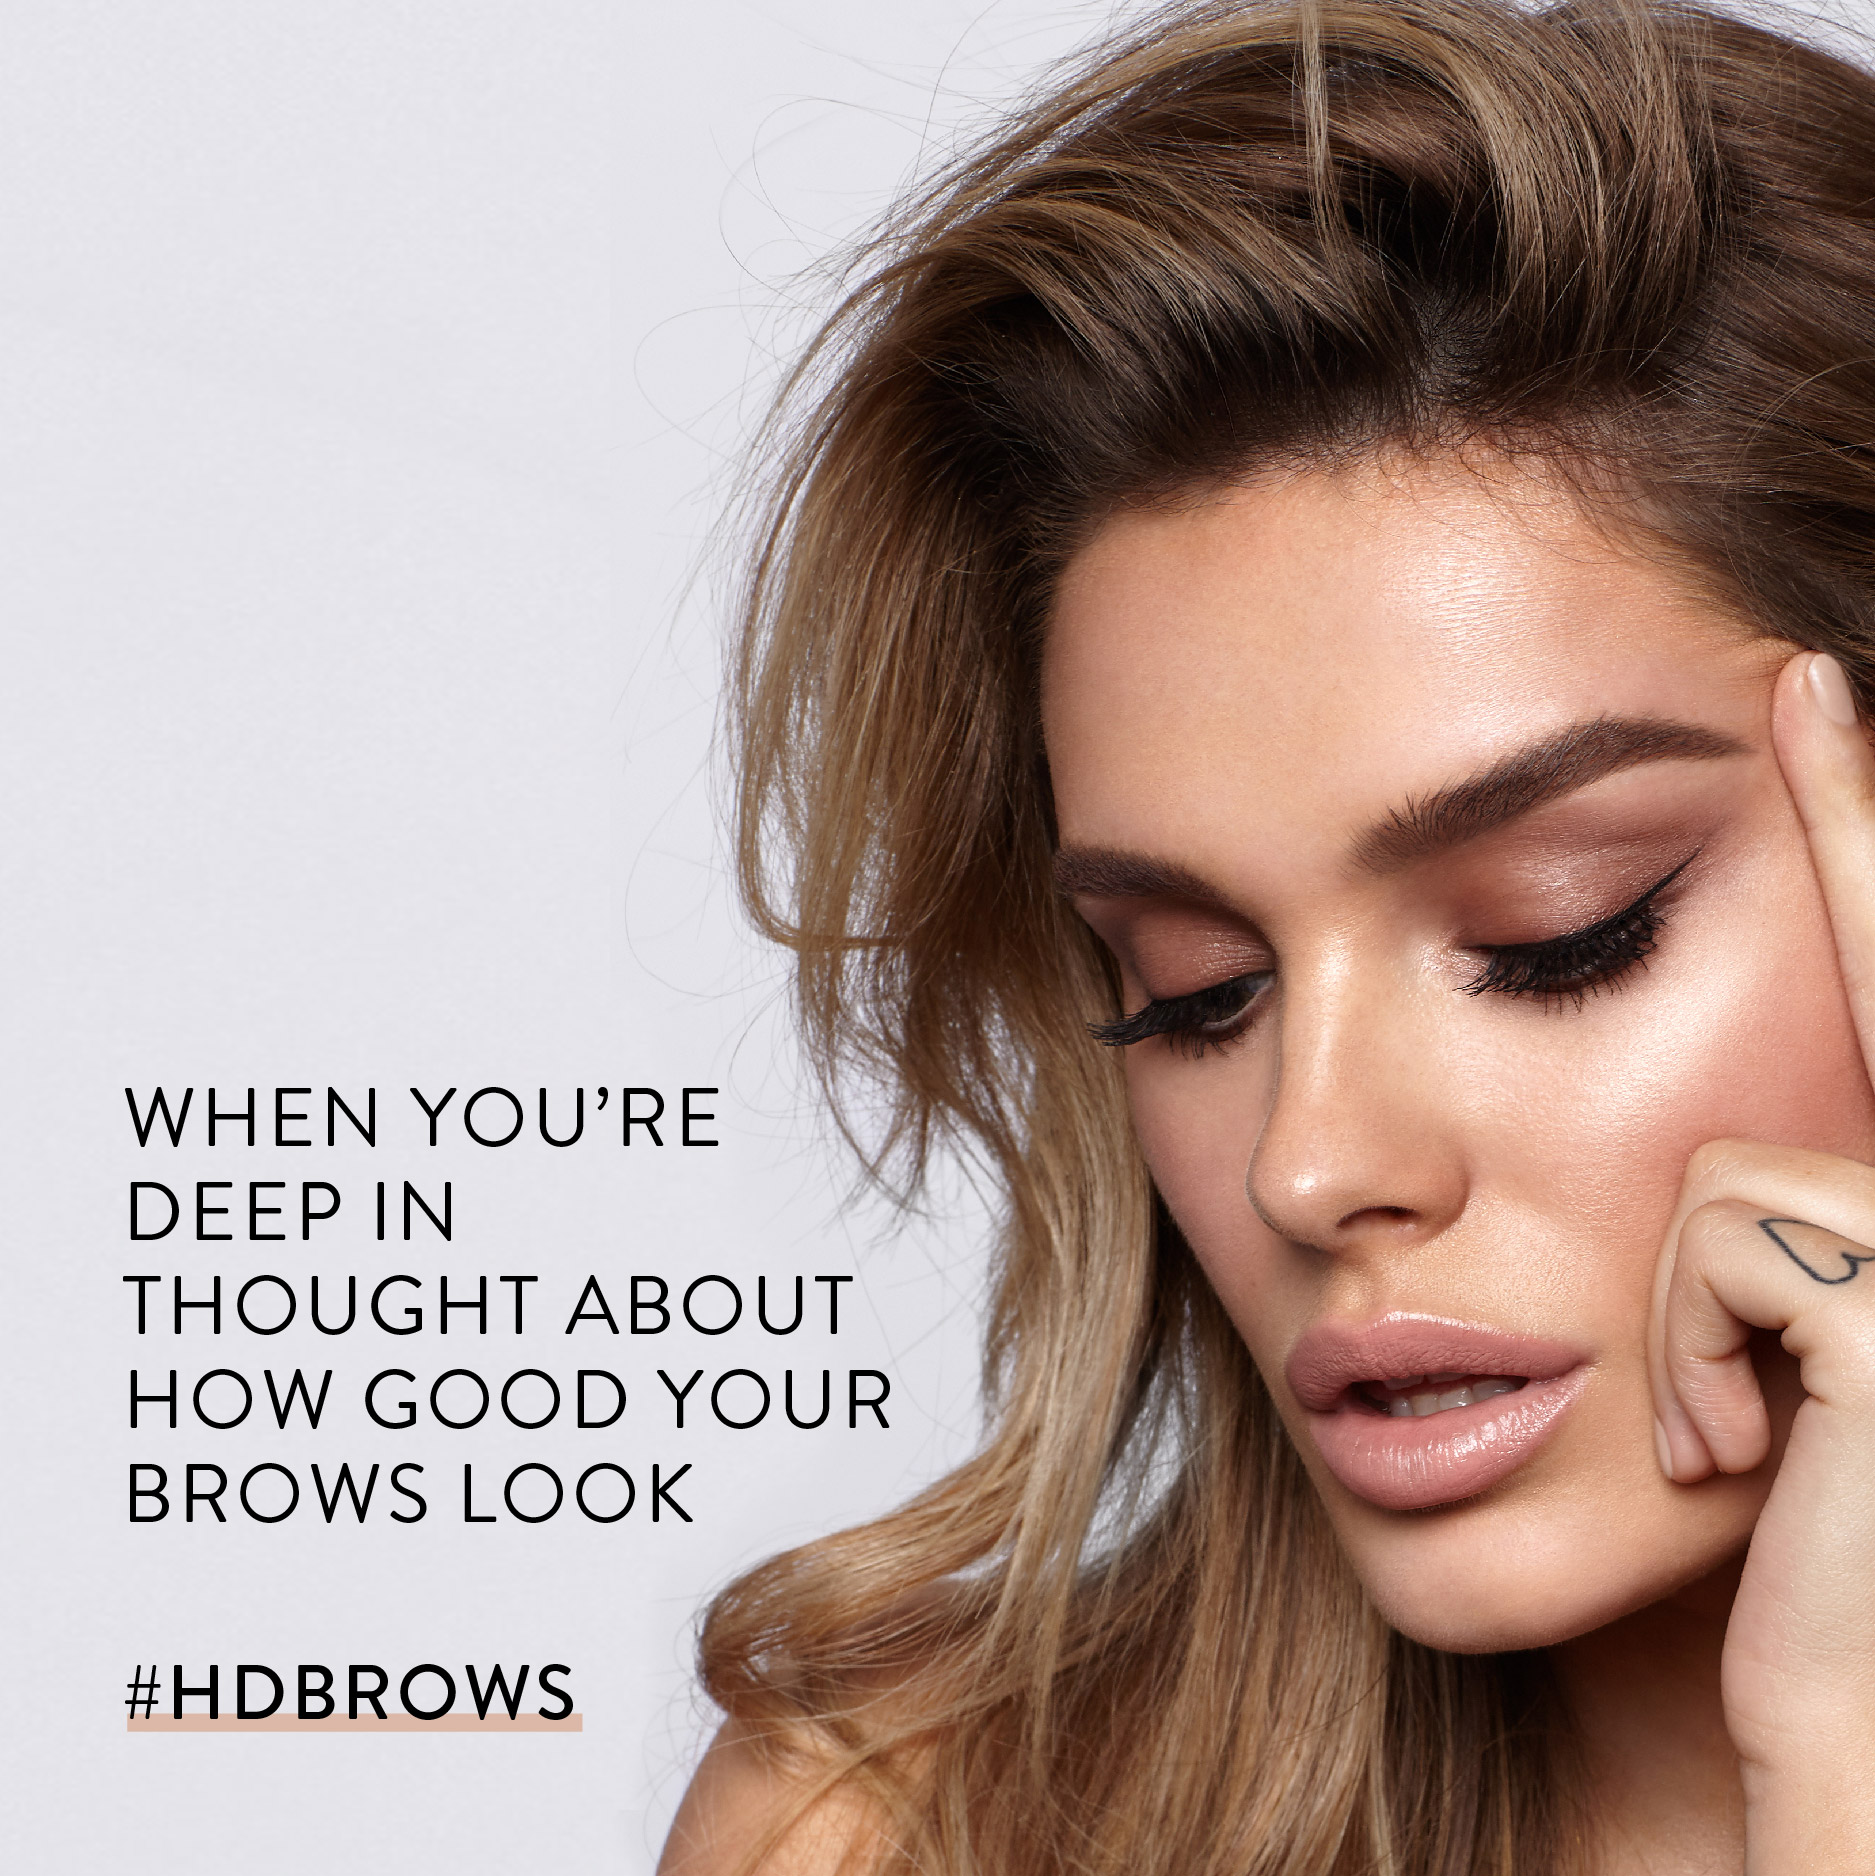 HOW_GOOD_YOUR_BROWS_LOOK